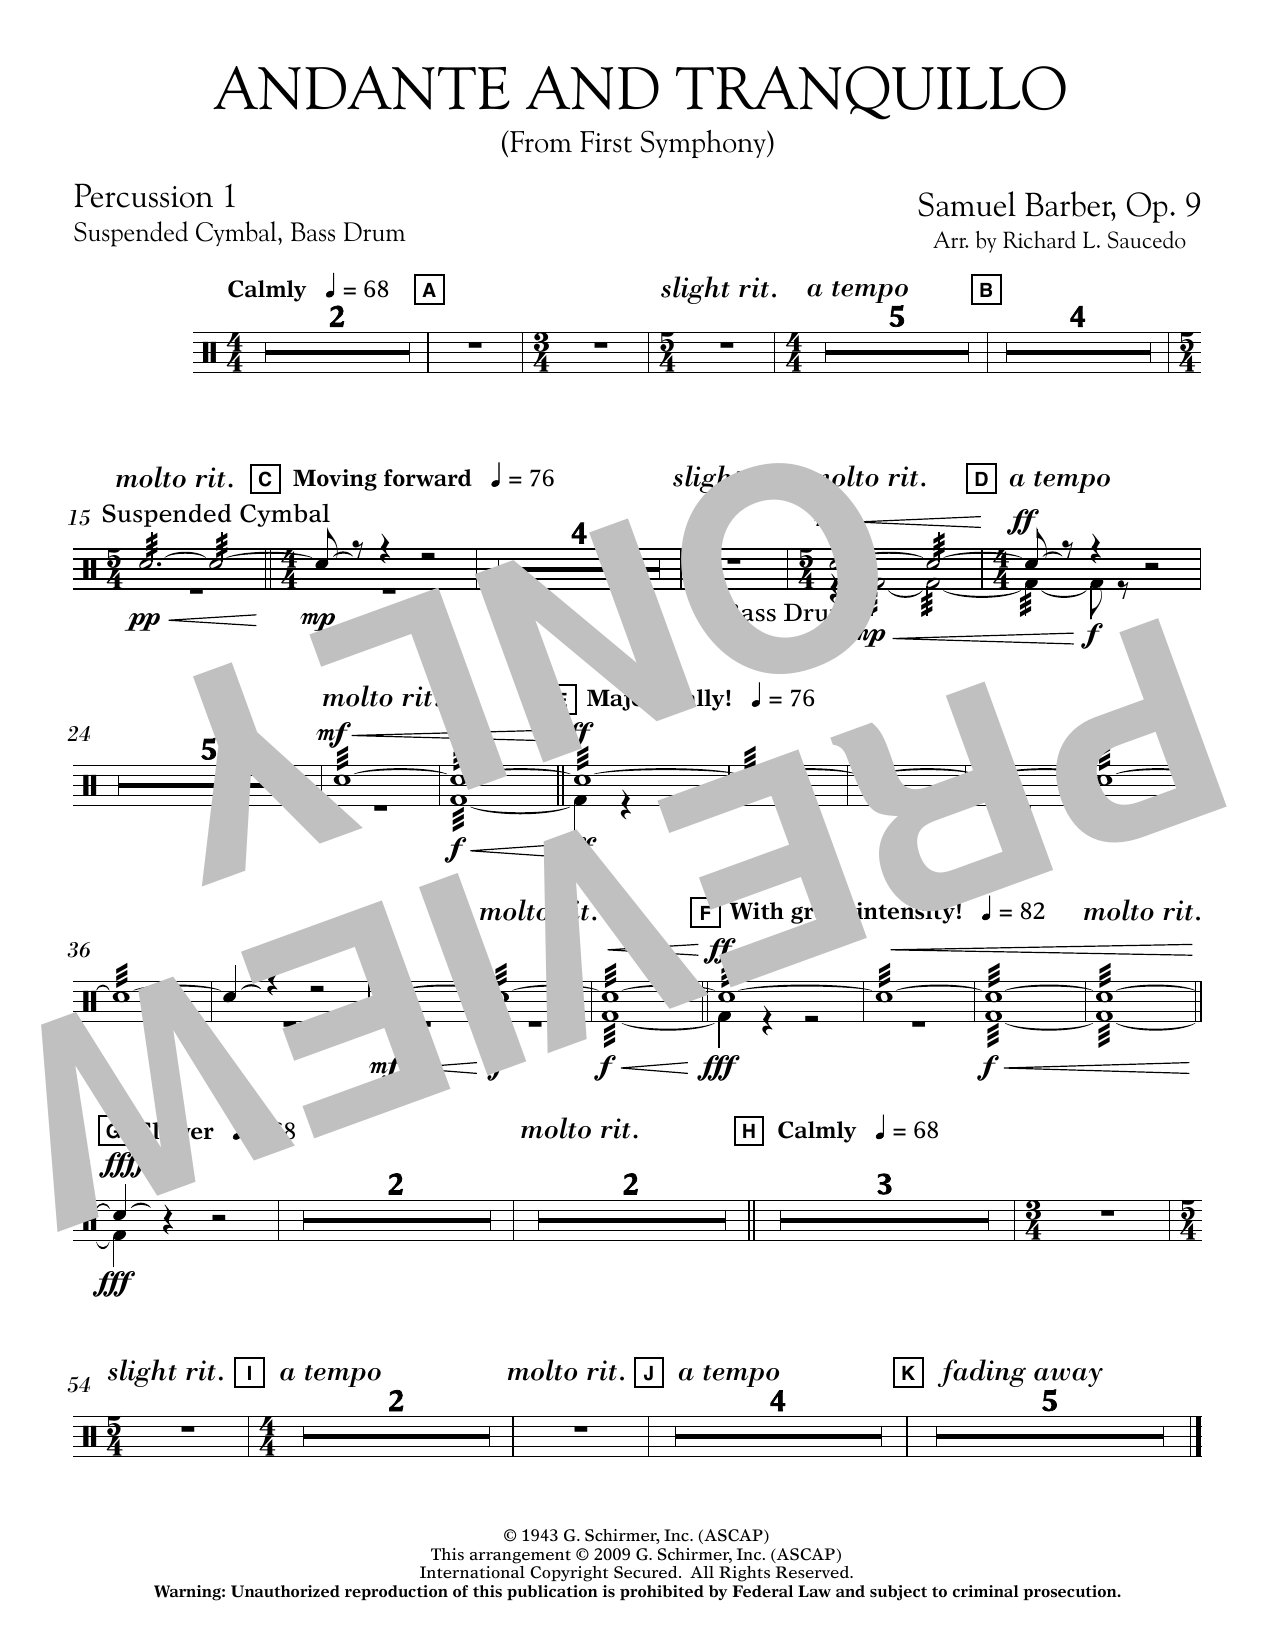 Andante and Tranquillo (from First Symphony) - Percussion 1